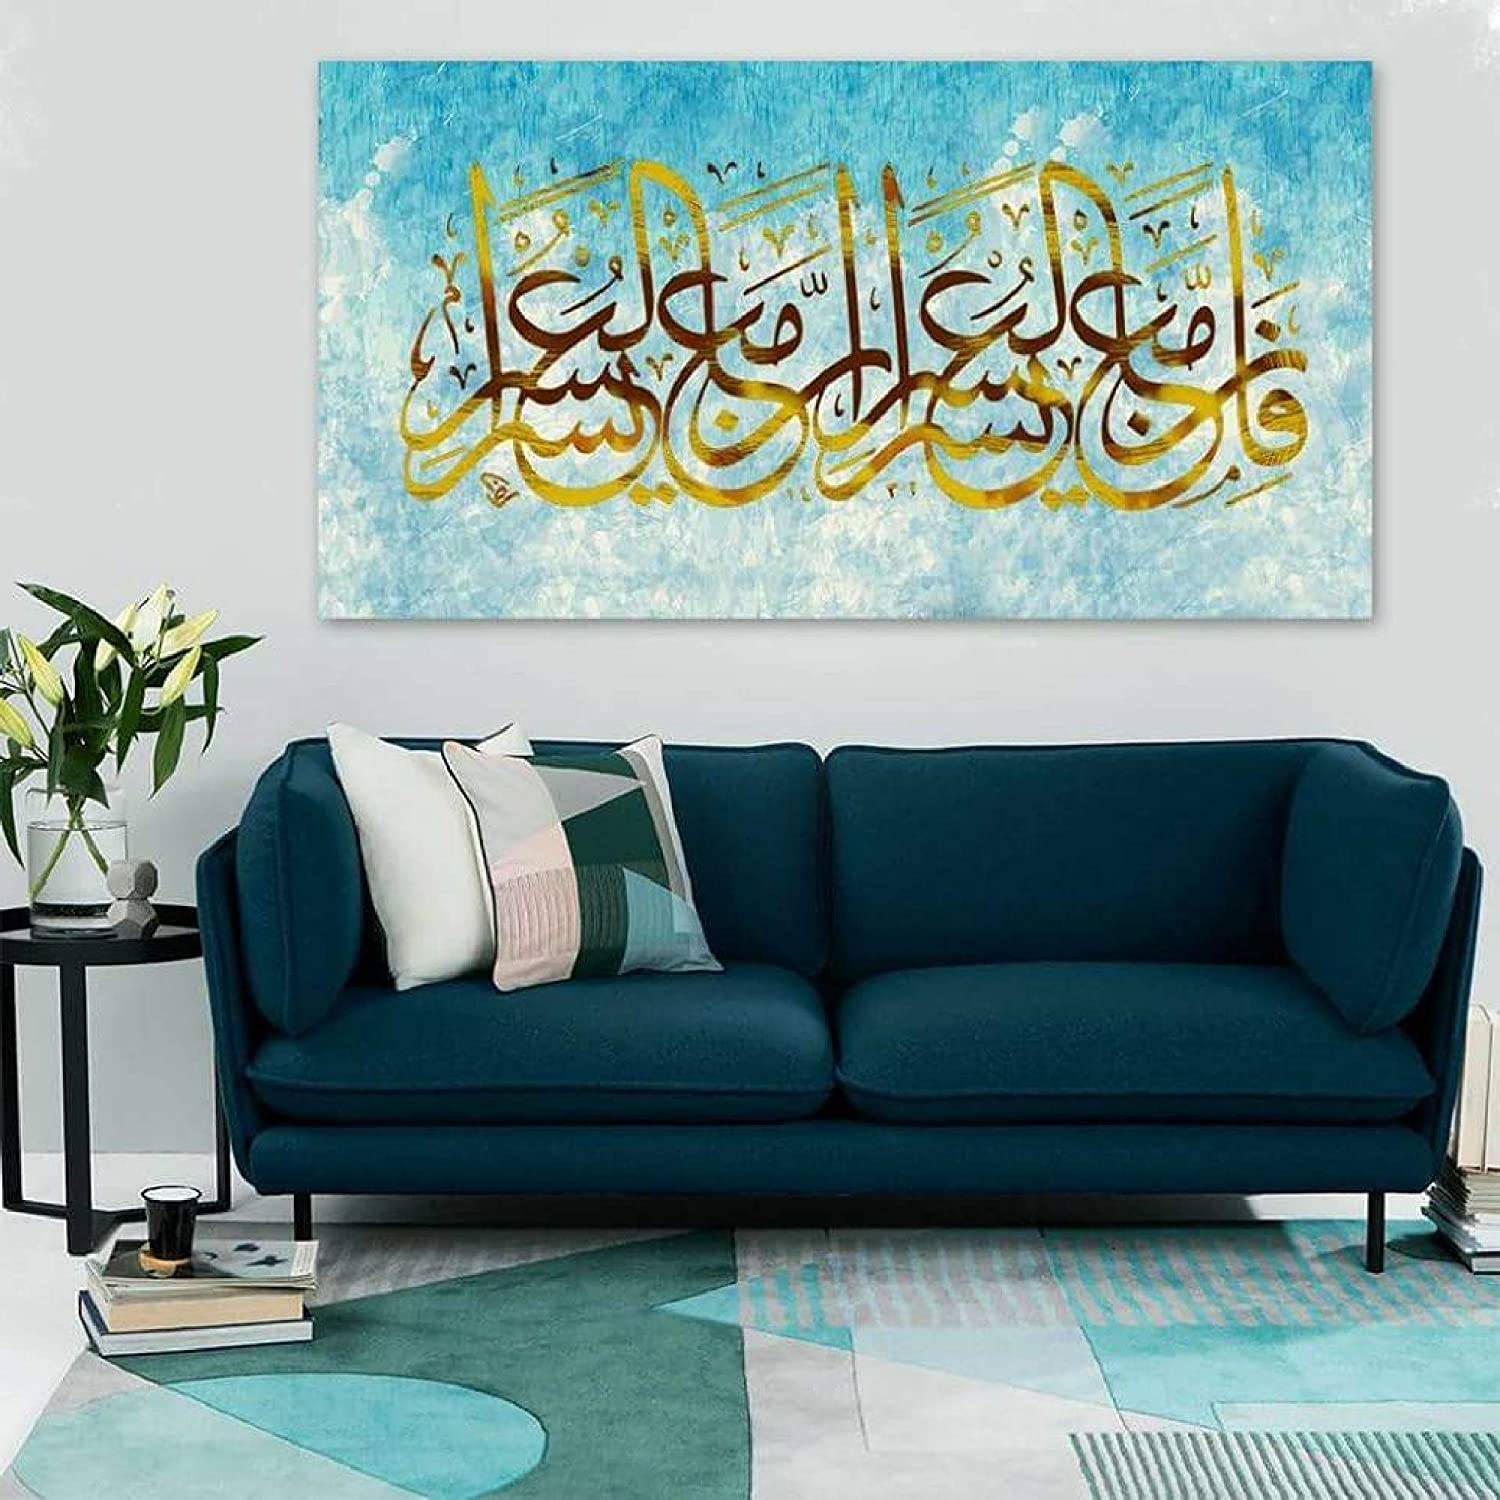 Amazon Com Islamic Canvas Wall Art Indeed With Hardship Will Be Ease Surah Ash Sharh 94 6 Unique Design Canvas Wall Art Design 39x19 6 Inches 100x50 Cm Posters Prints